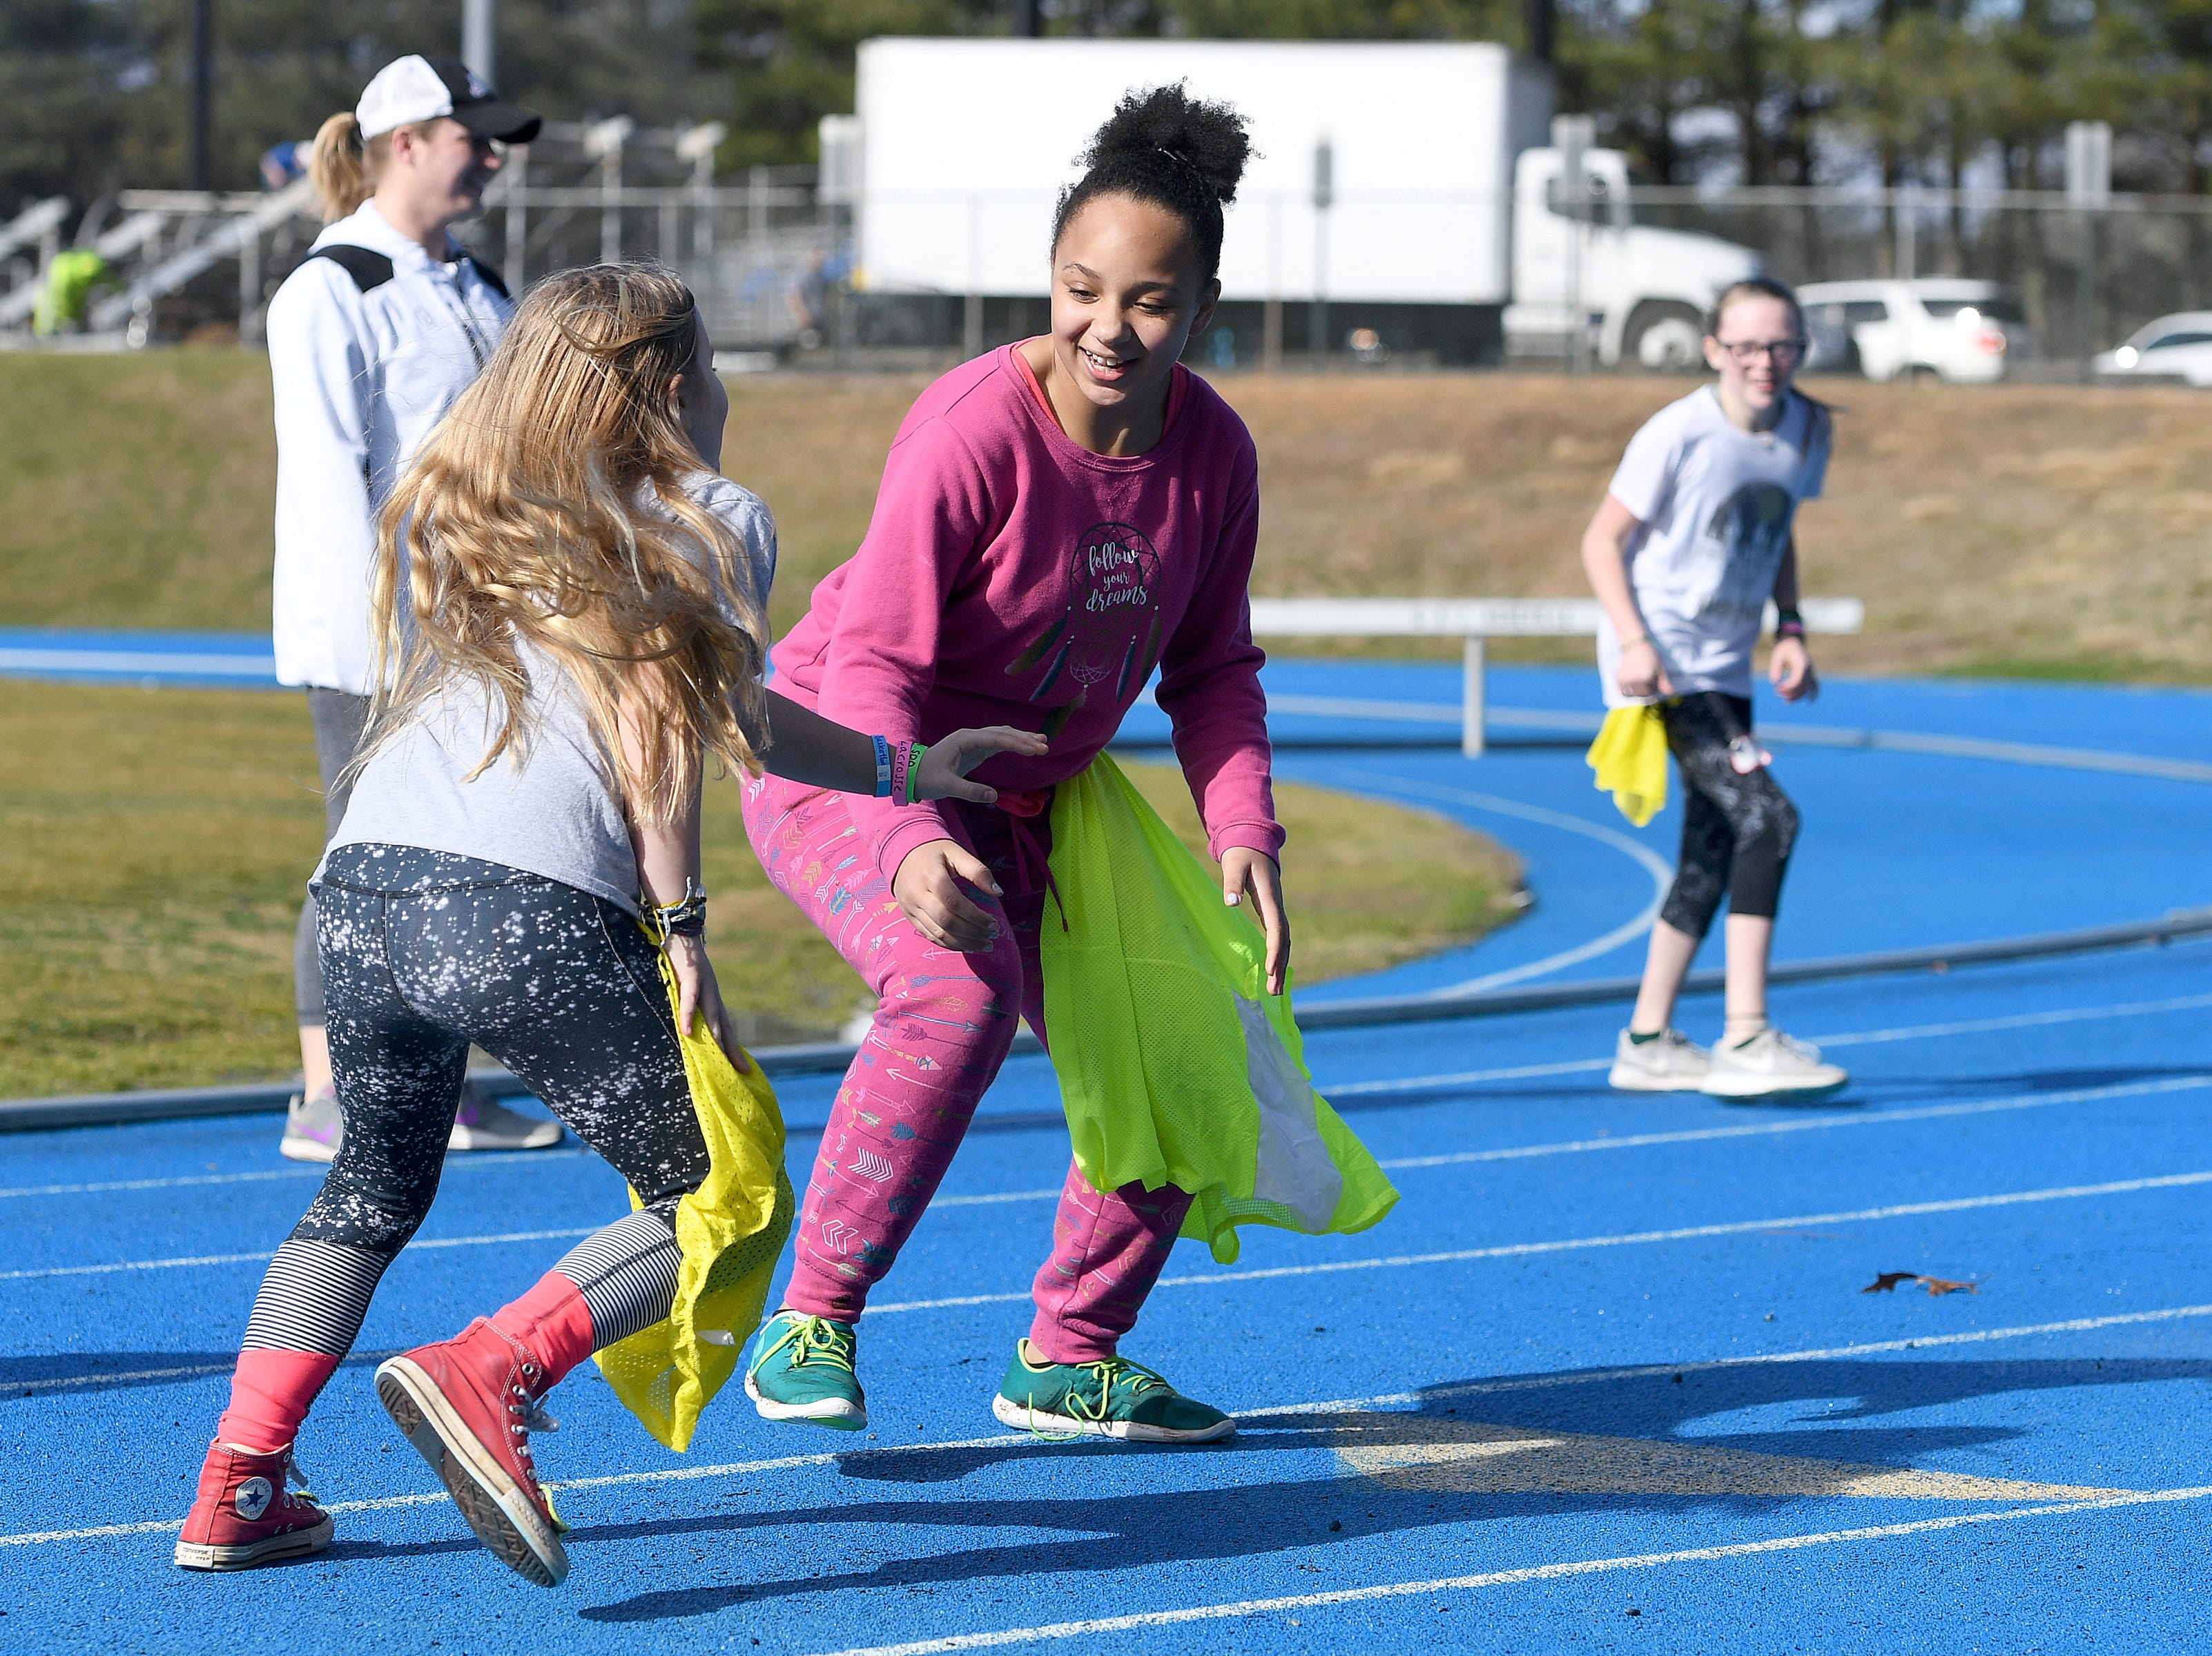 Julia Trollinger, 10, left, and Mary-Grayce Lee, 11, chase each other in a game of pinny tag during a lacrosse clinic at the National Girls and Women in Sports Day at UNC Asheville on Feb. 16, 2019. The clinic, hosted by Asheville Parks and Recreation and Buncombe County Recreation Services introduced girls to different sports of their choice throughout the morning.